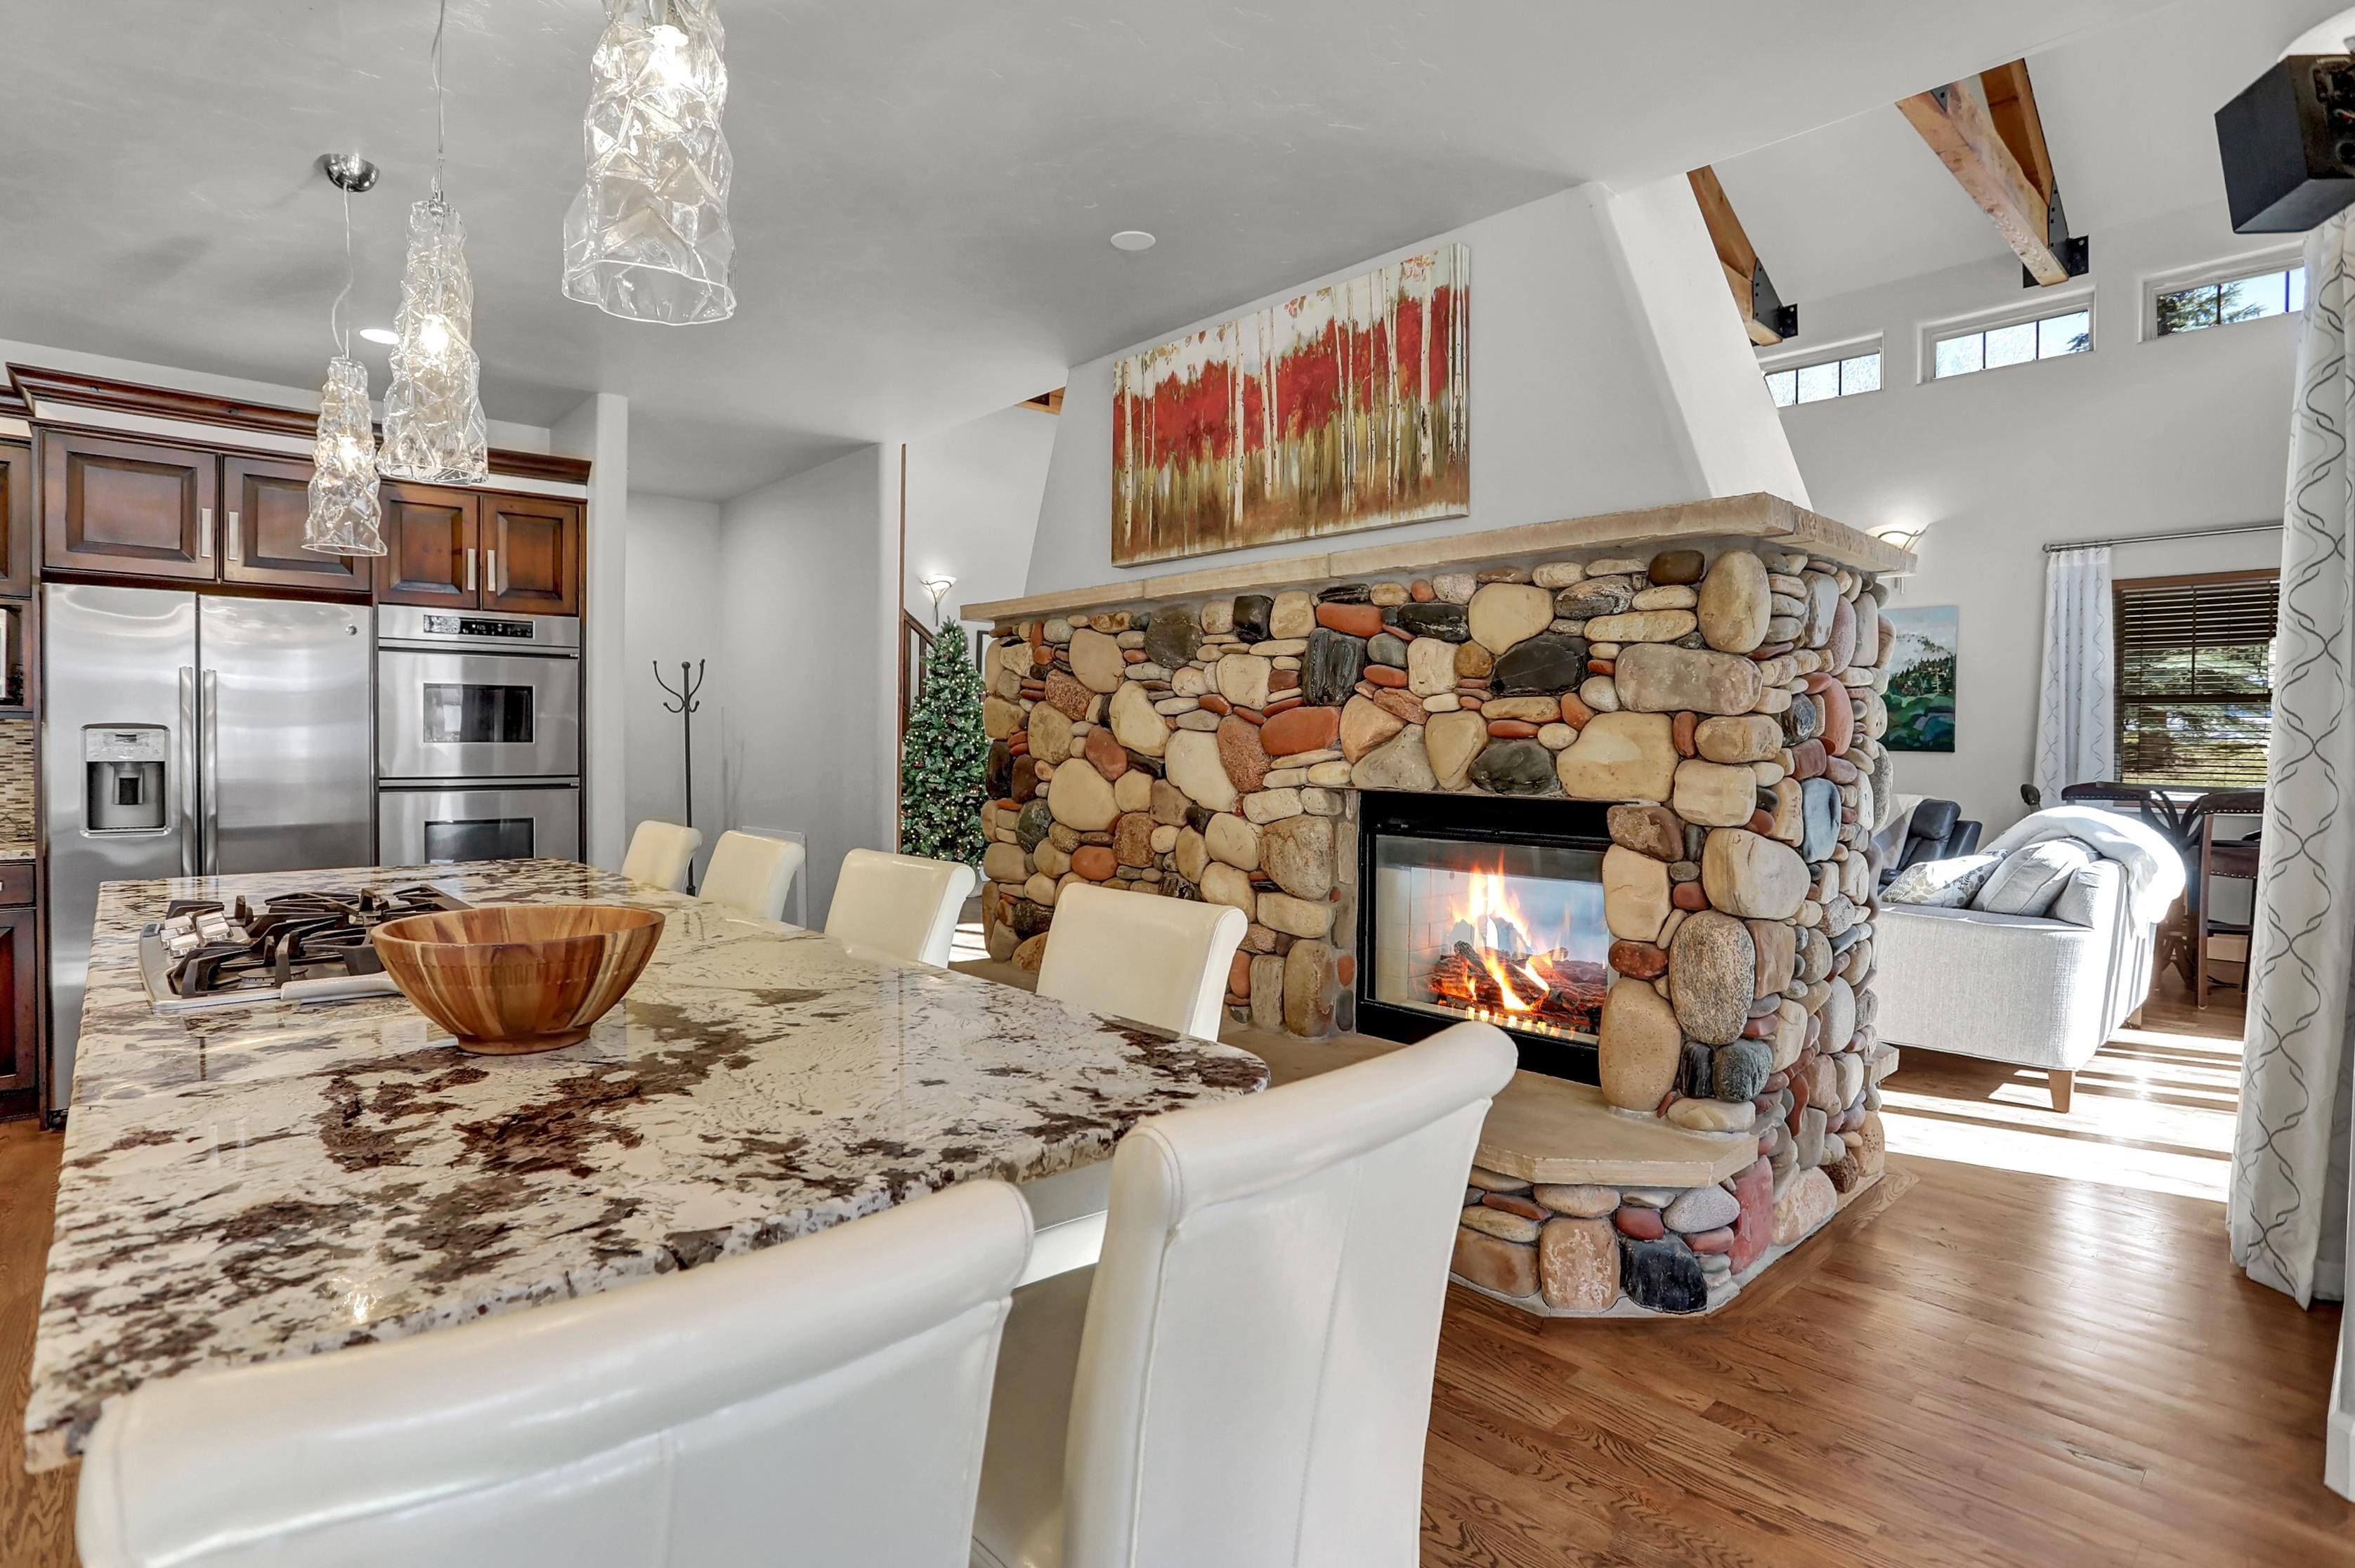 Stay cozy next to the double-sided fireplace found in the kitchen and living area.